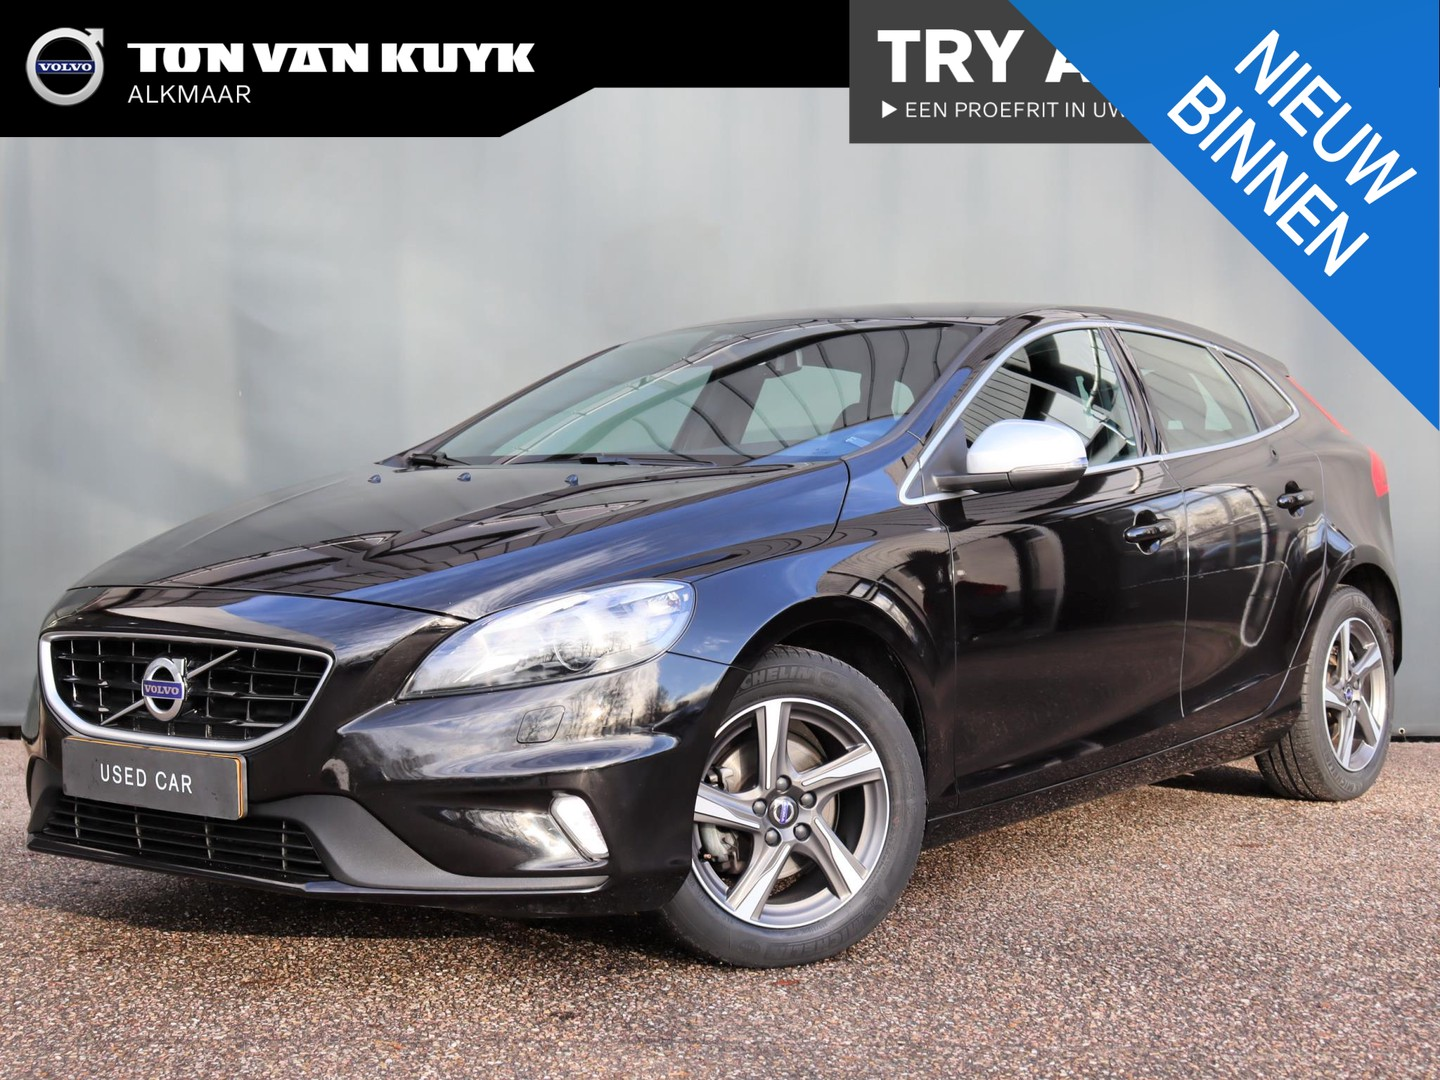 Volvo V40 2.0 d2 r-design business / business pack connect / xenon / stoelverwarming